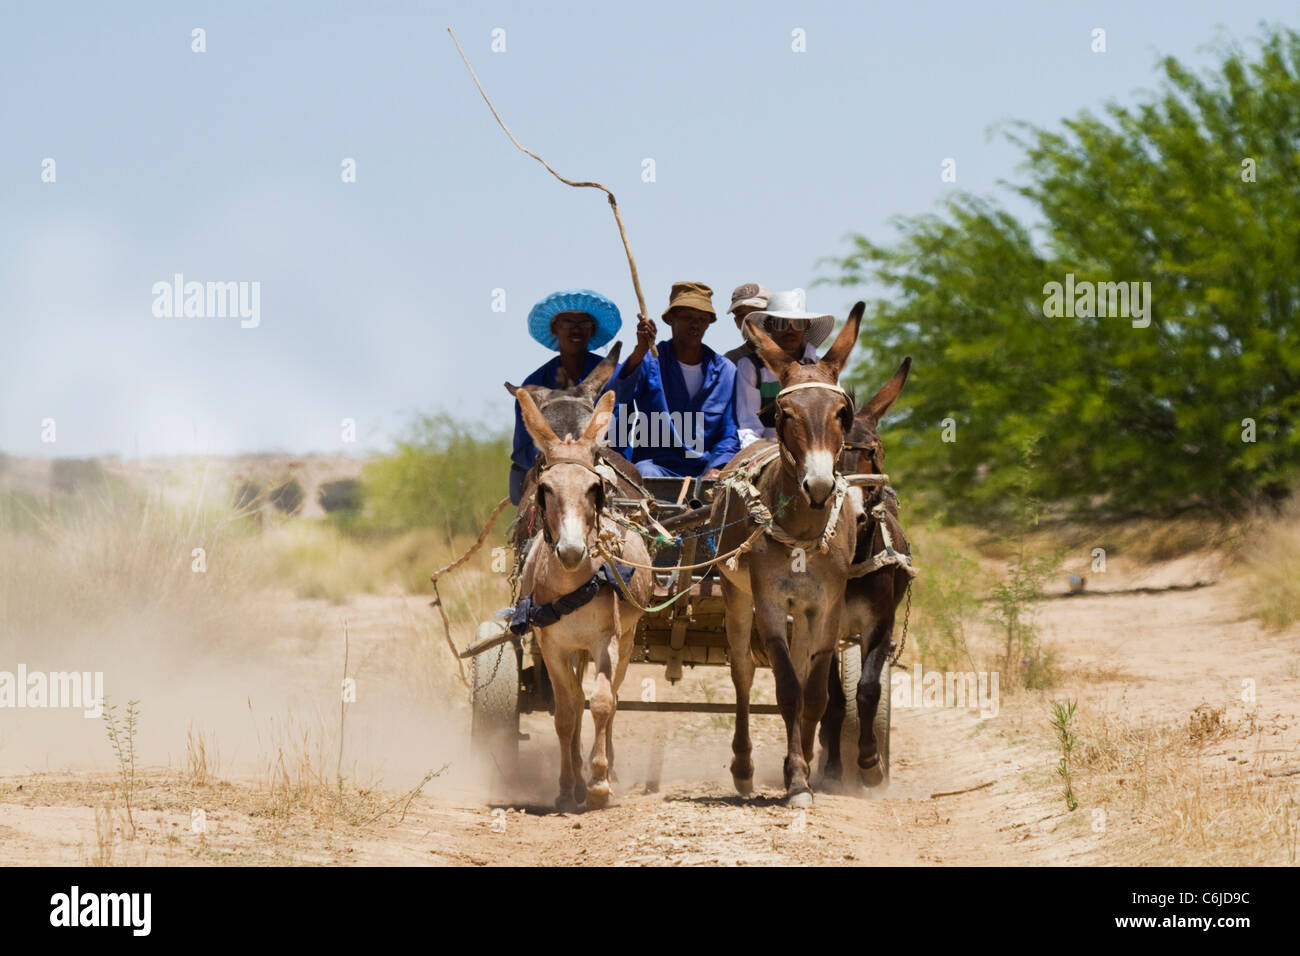 Donkey cart in the Kalahari with a man wielding a whip to urge the donkeys forwards - Stock Image